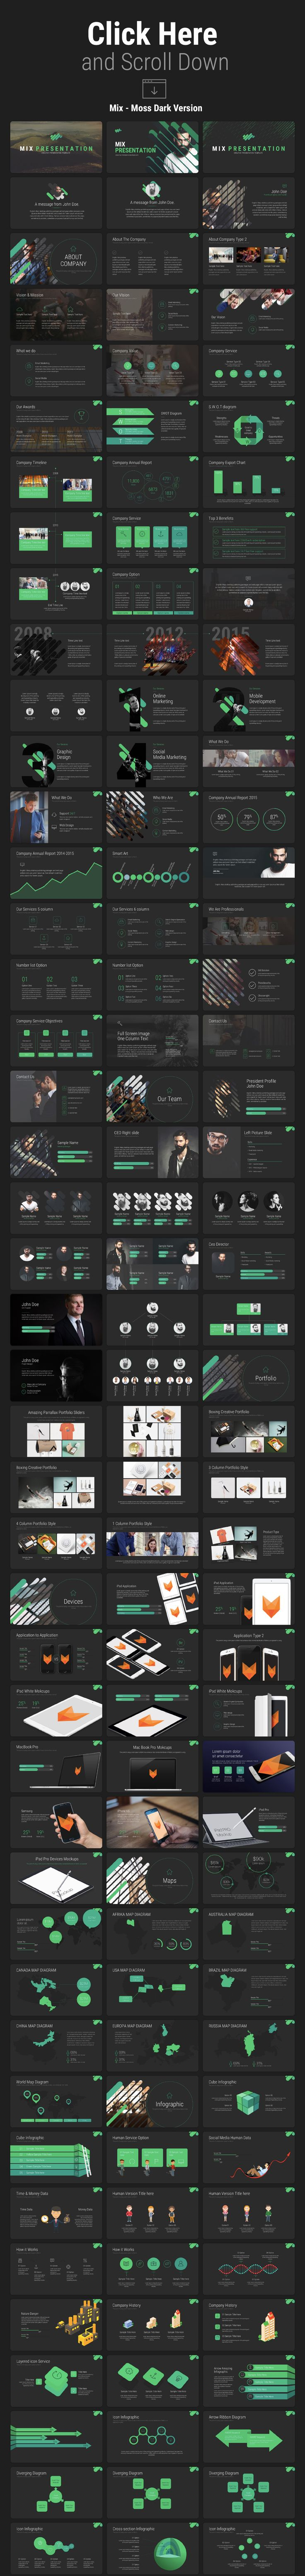 Mix Powerpoint Presentation by batzorig.regzen on Creative Market